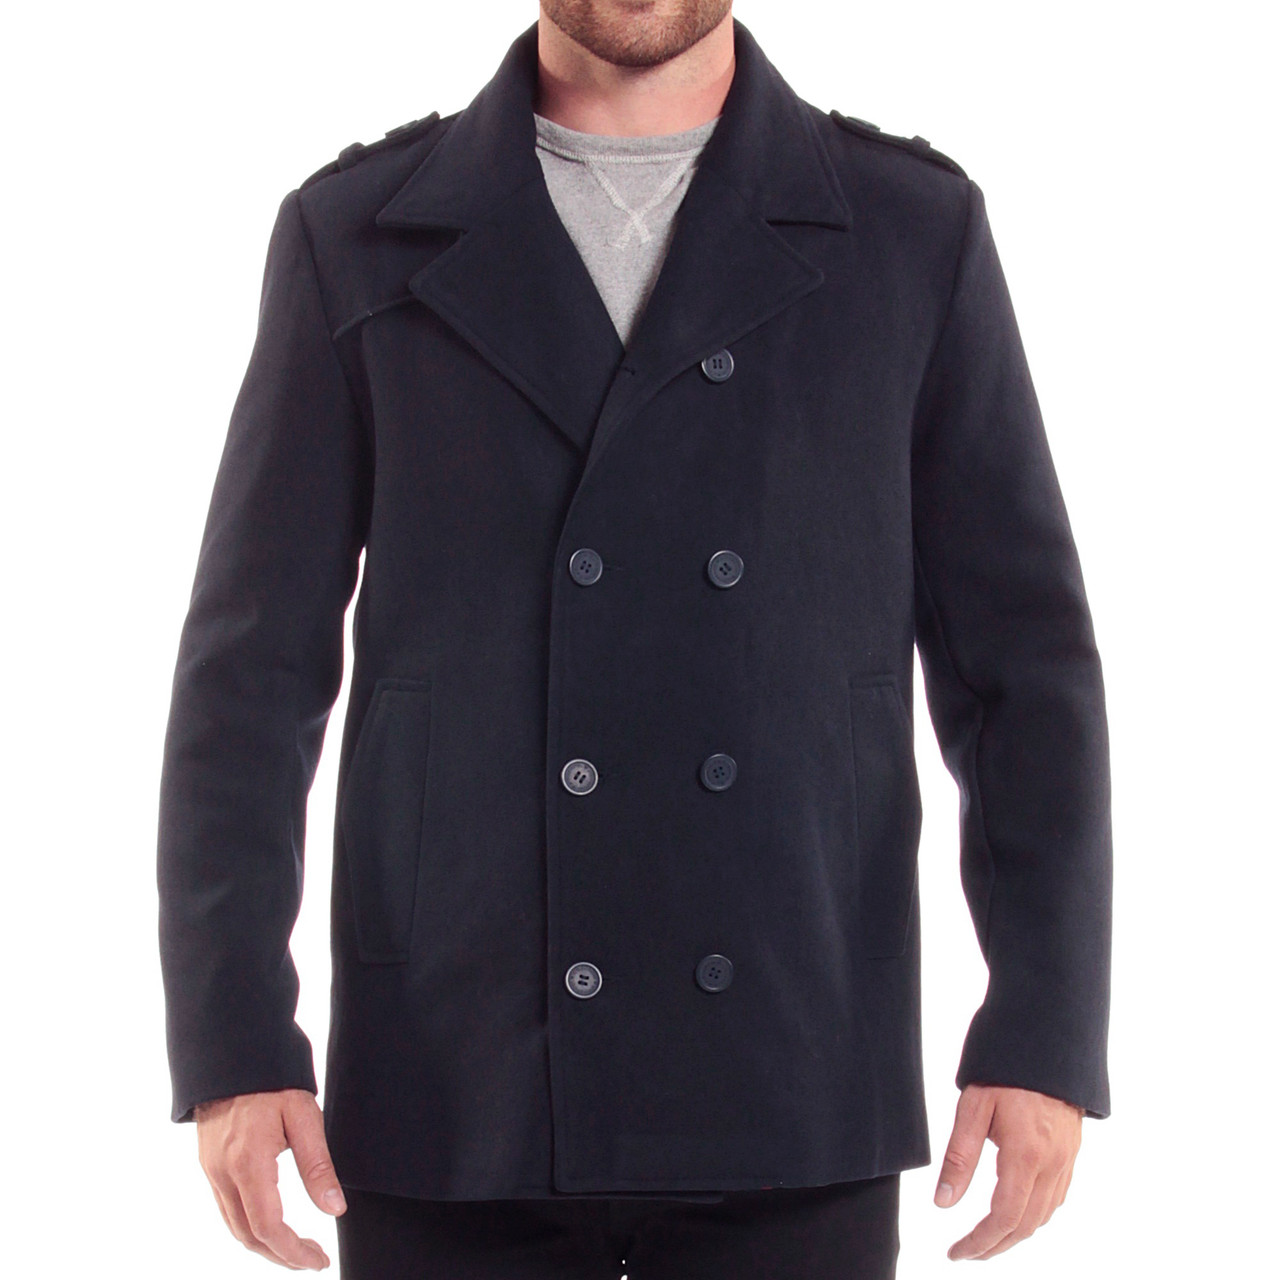 a5243b400d8 Alpine Swiss Jake Mens Wool Pea Coat Double Breasted Jacket